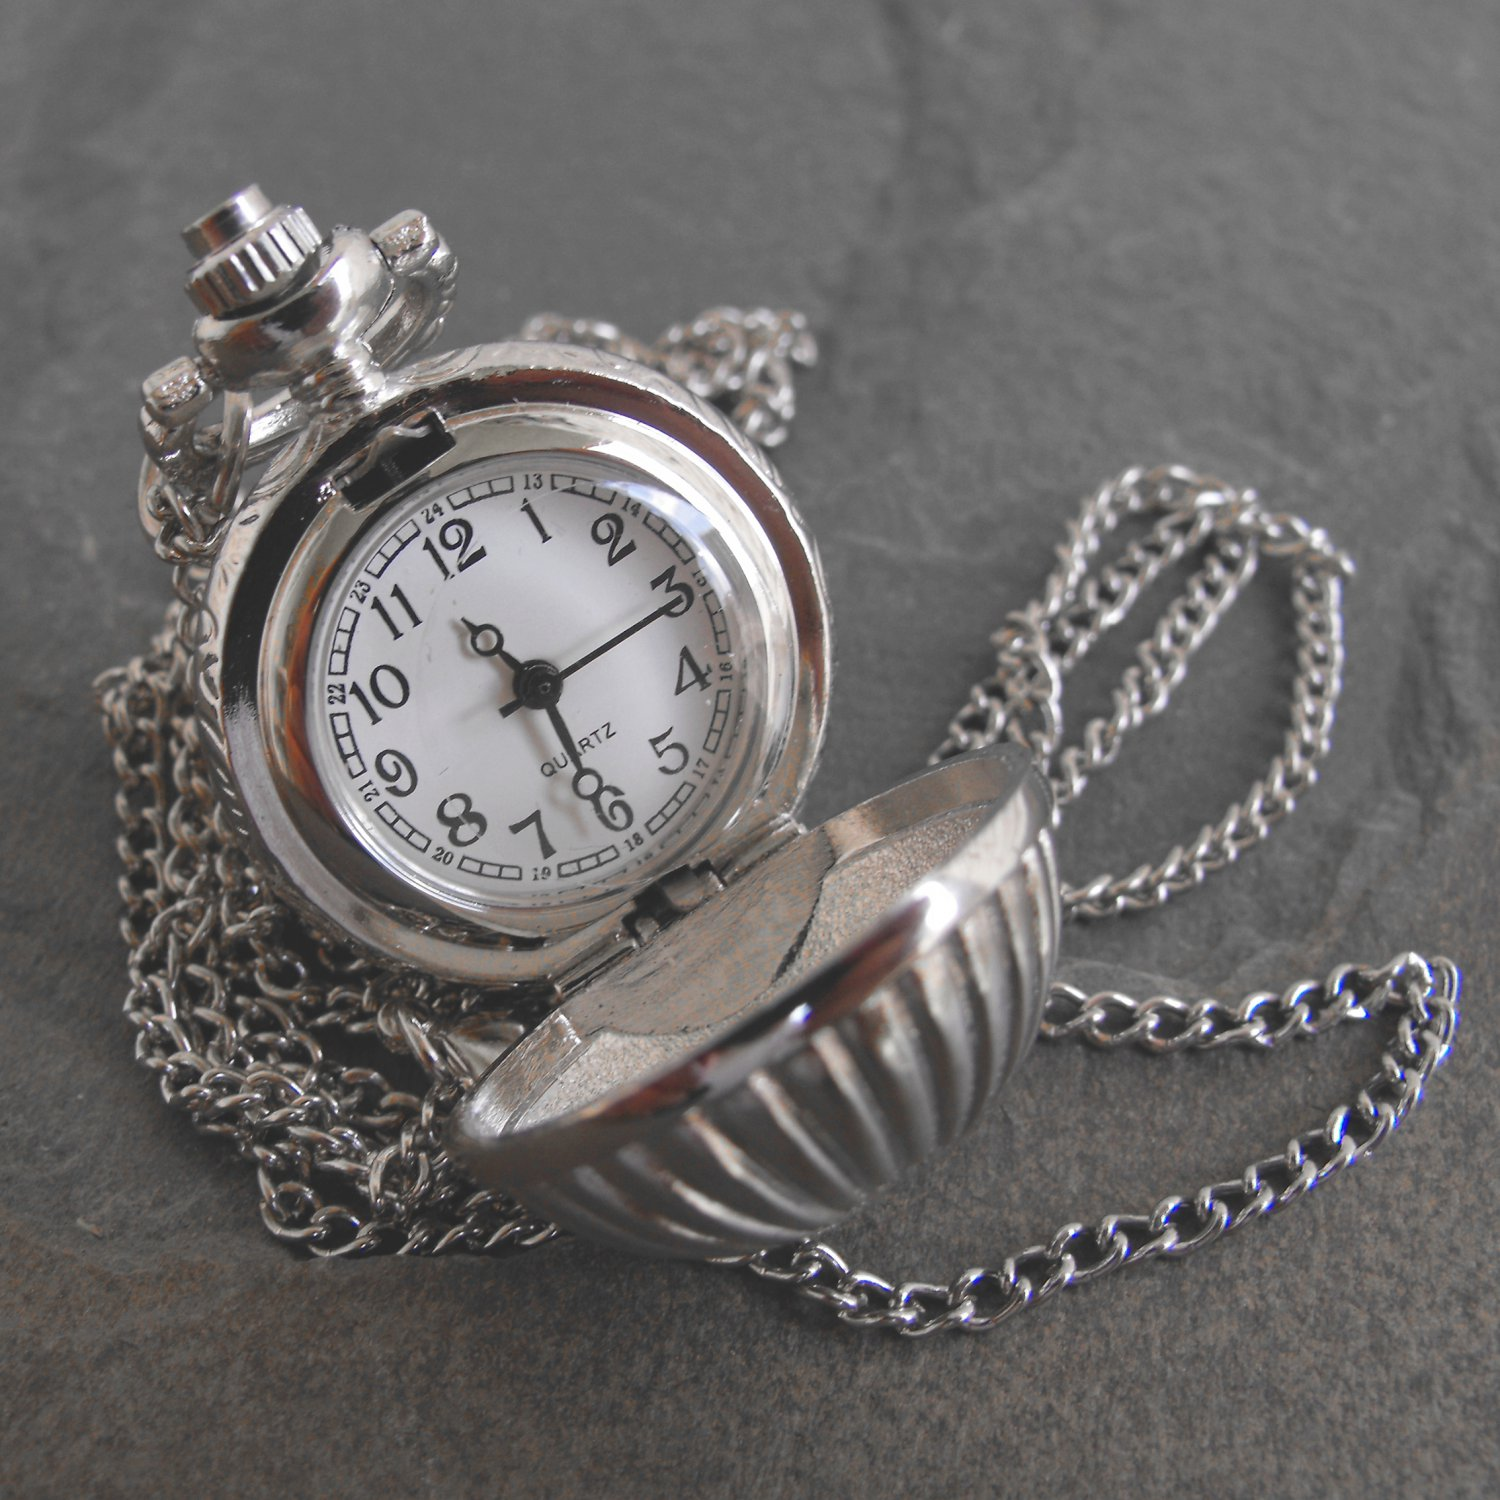 Stainless Steel Sphere Pendant Timepiece With Chain